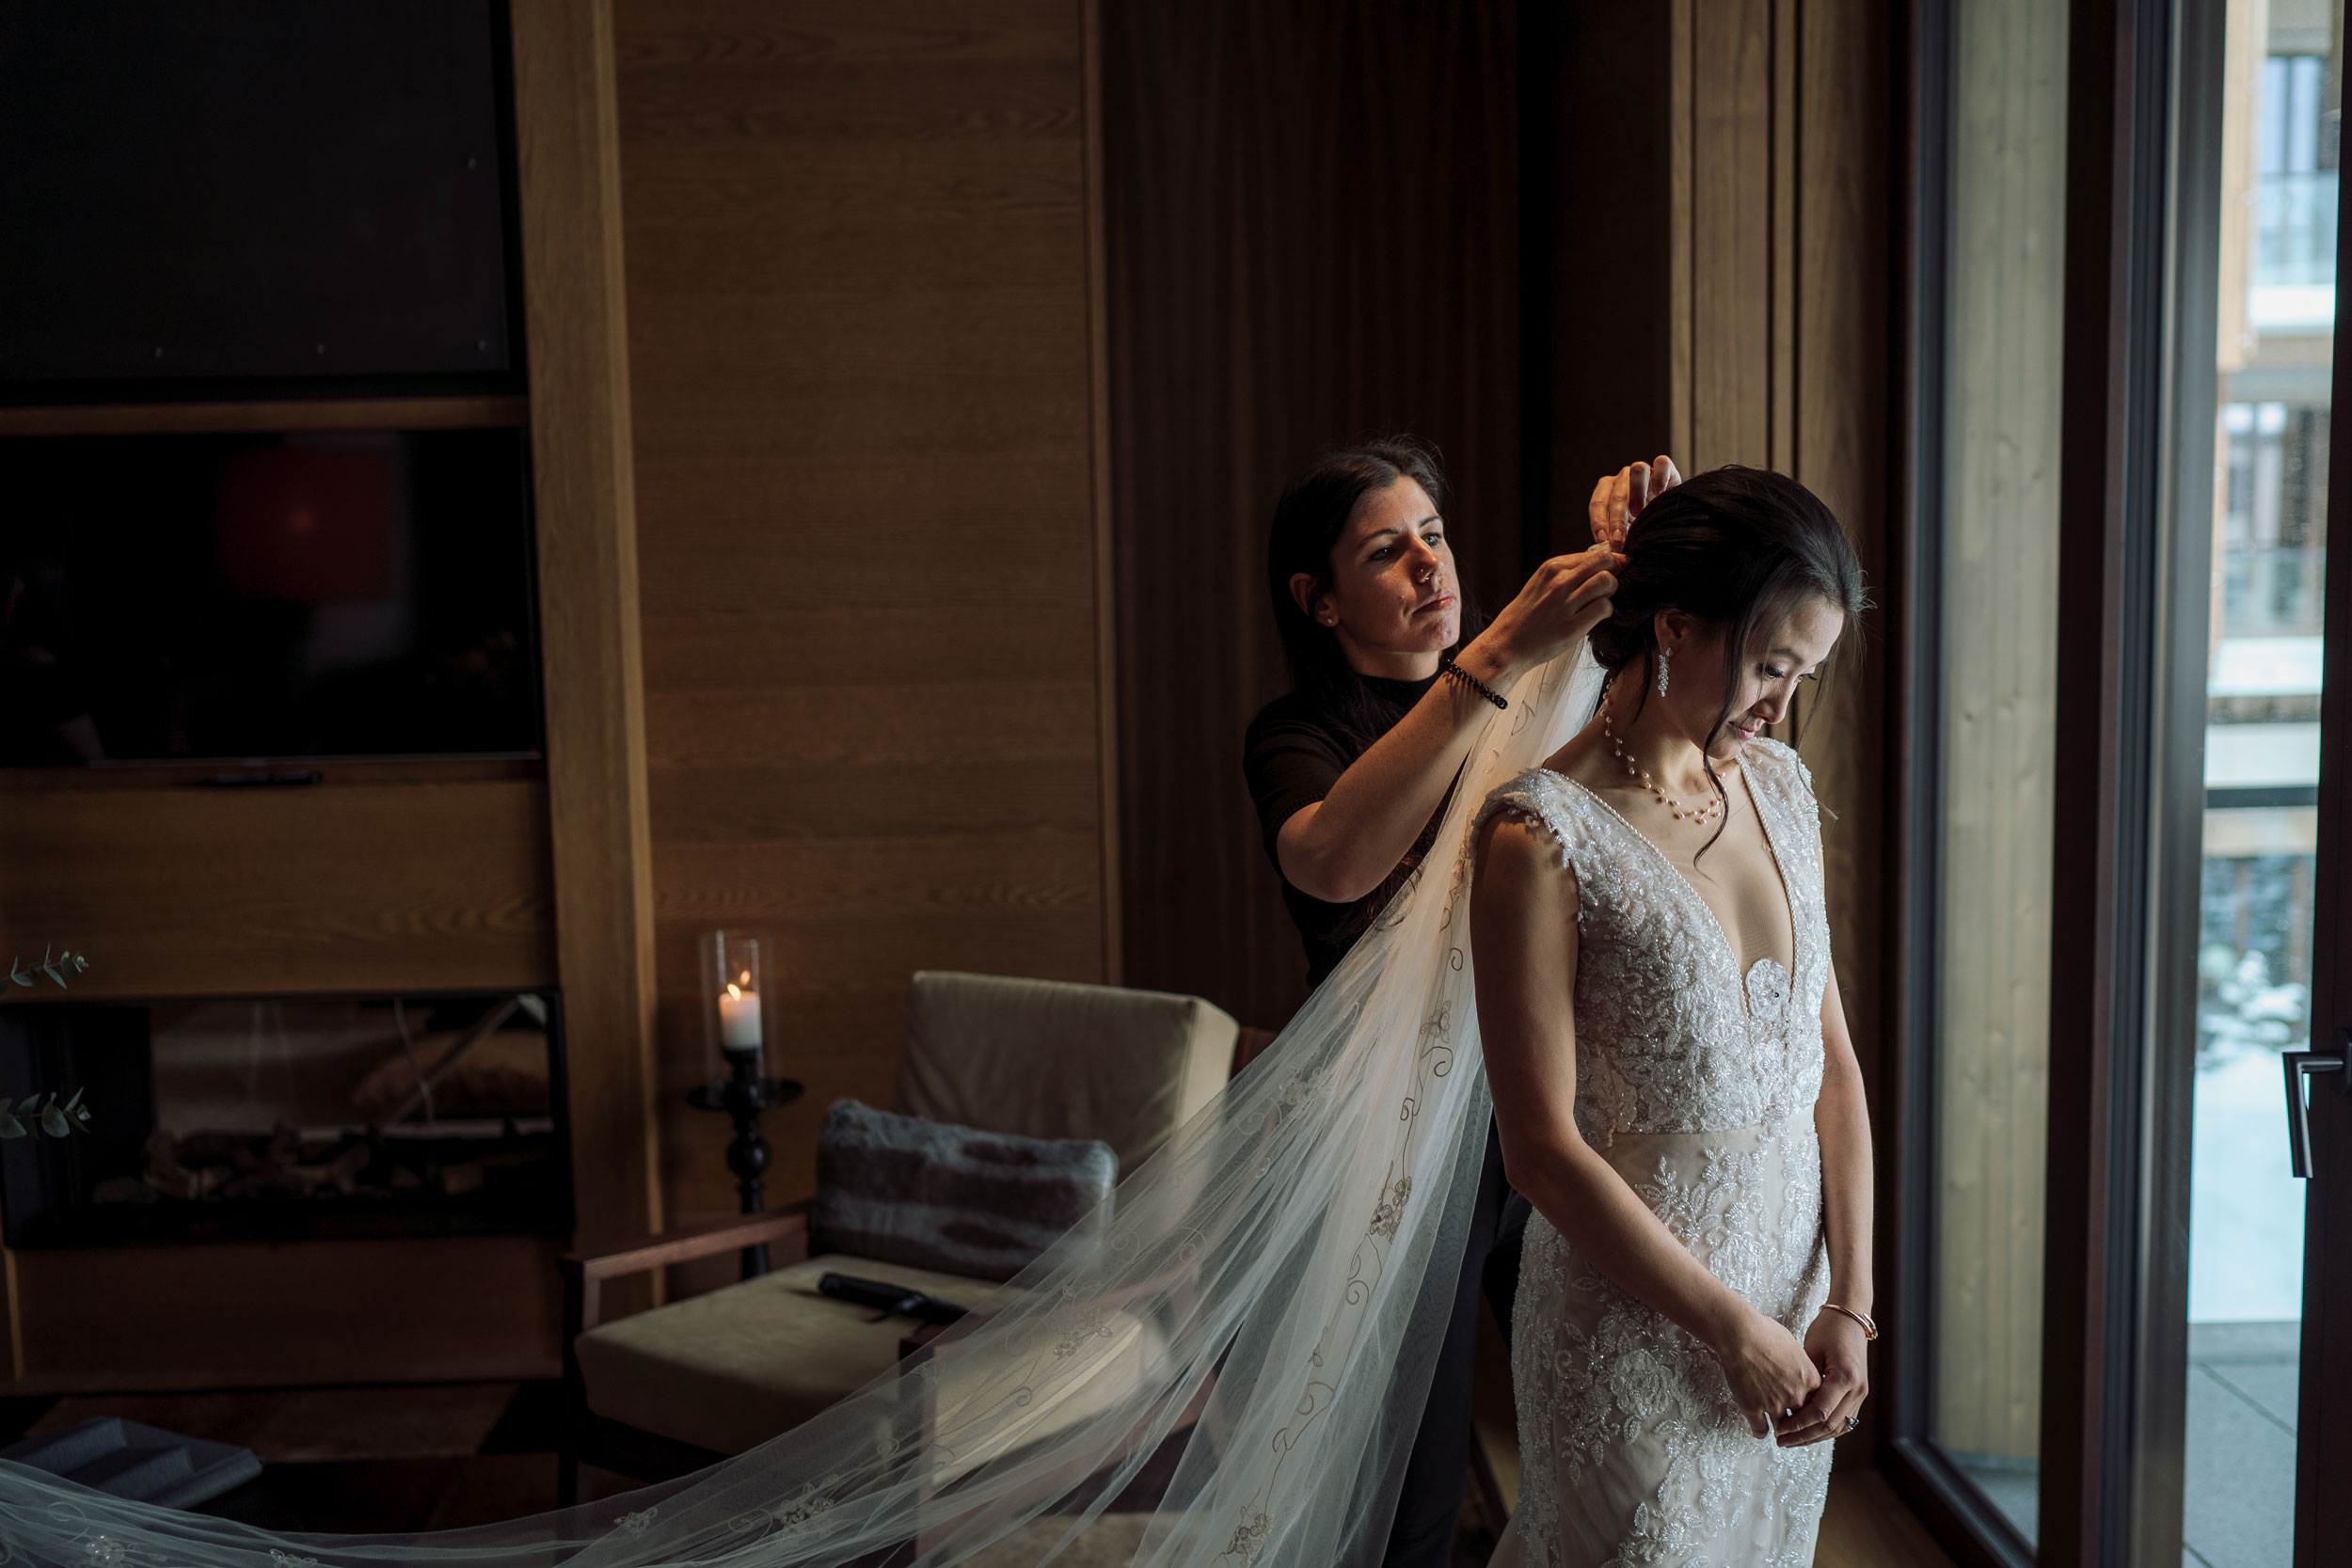 bridalhairandmakeup makeup artist andermat Switzerland destination Wedding